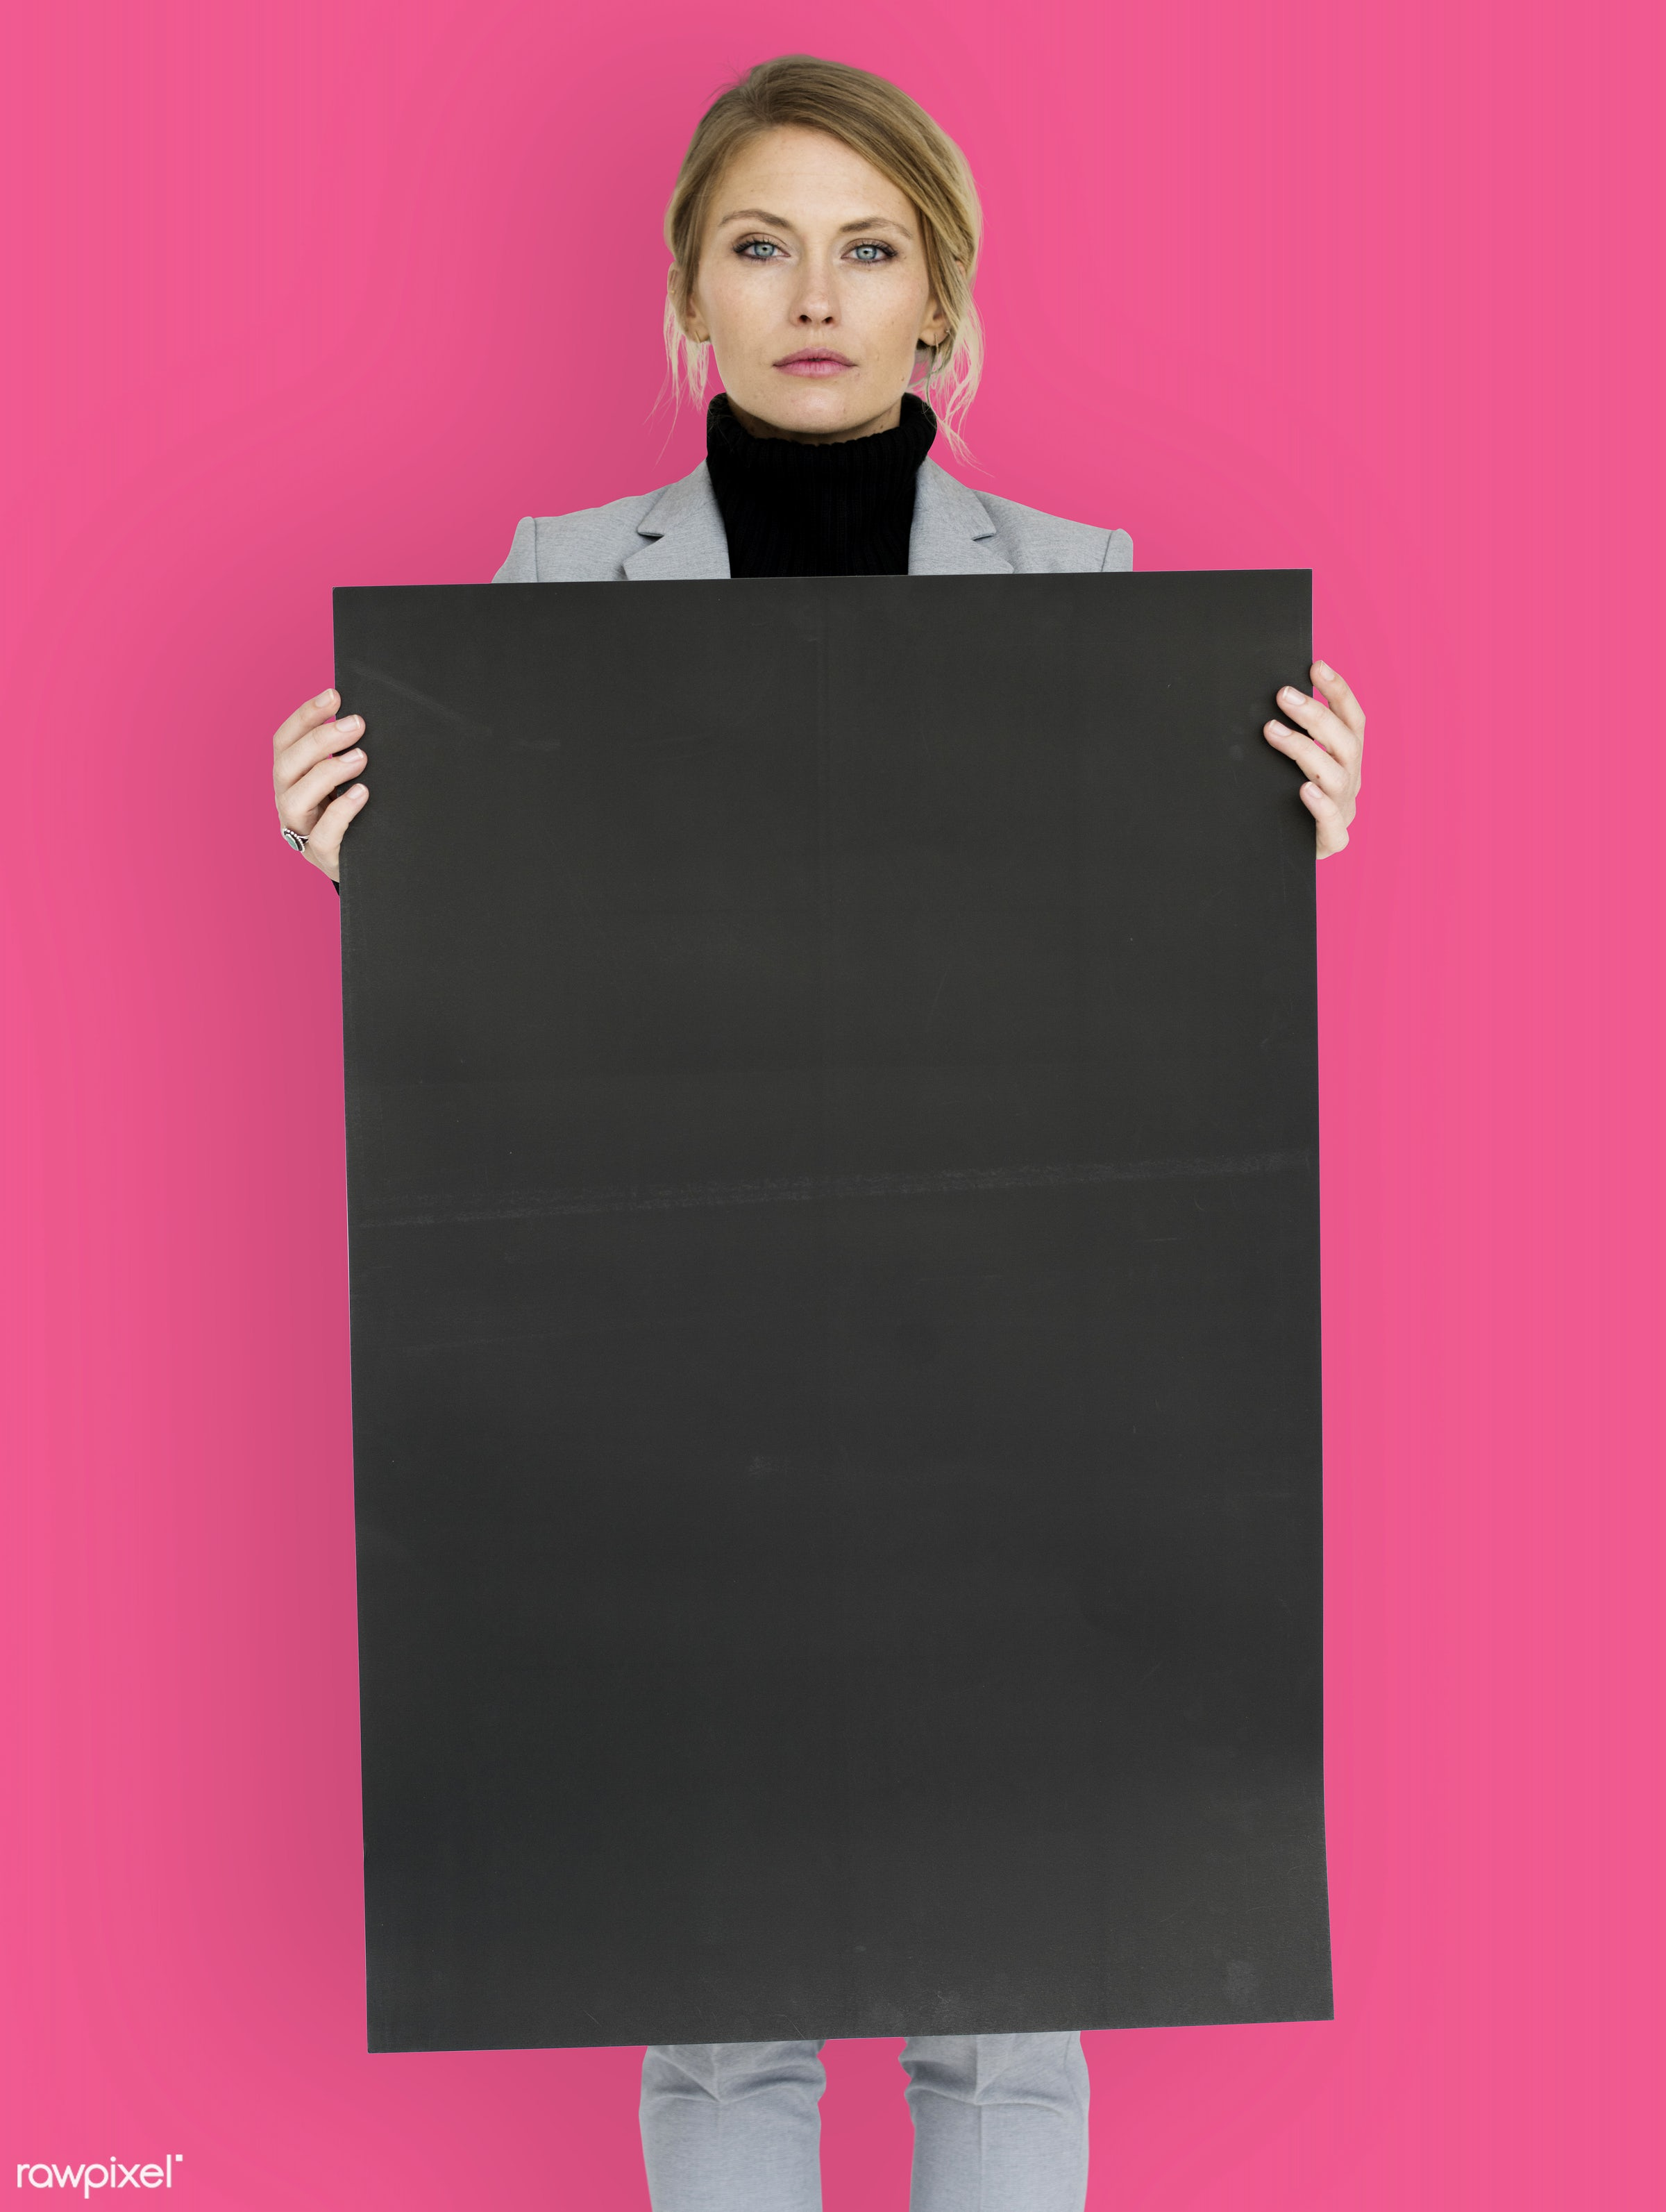 studio, expression, person, holding, courage, people, placard, woman, pink, isolated, businesswoman, portrait, charming,...